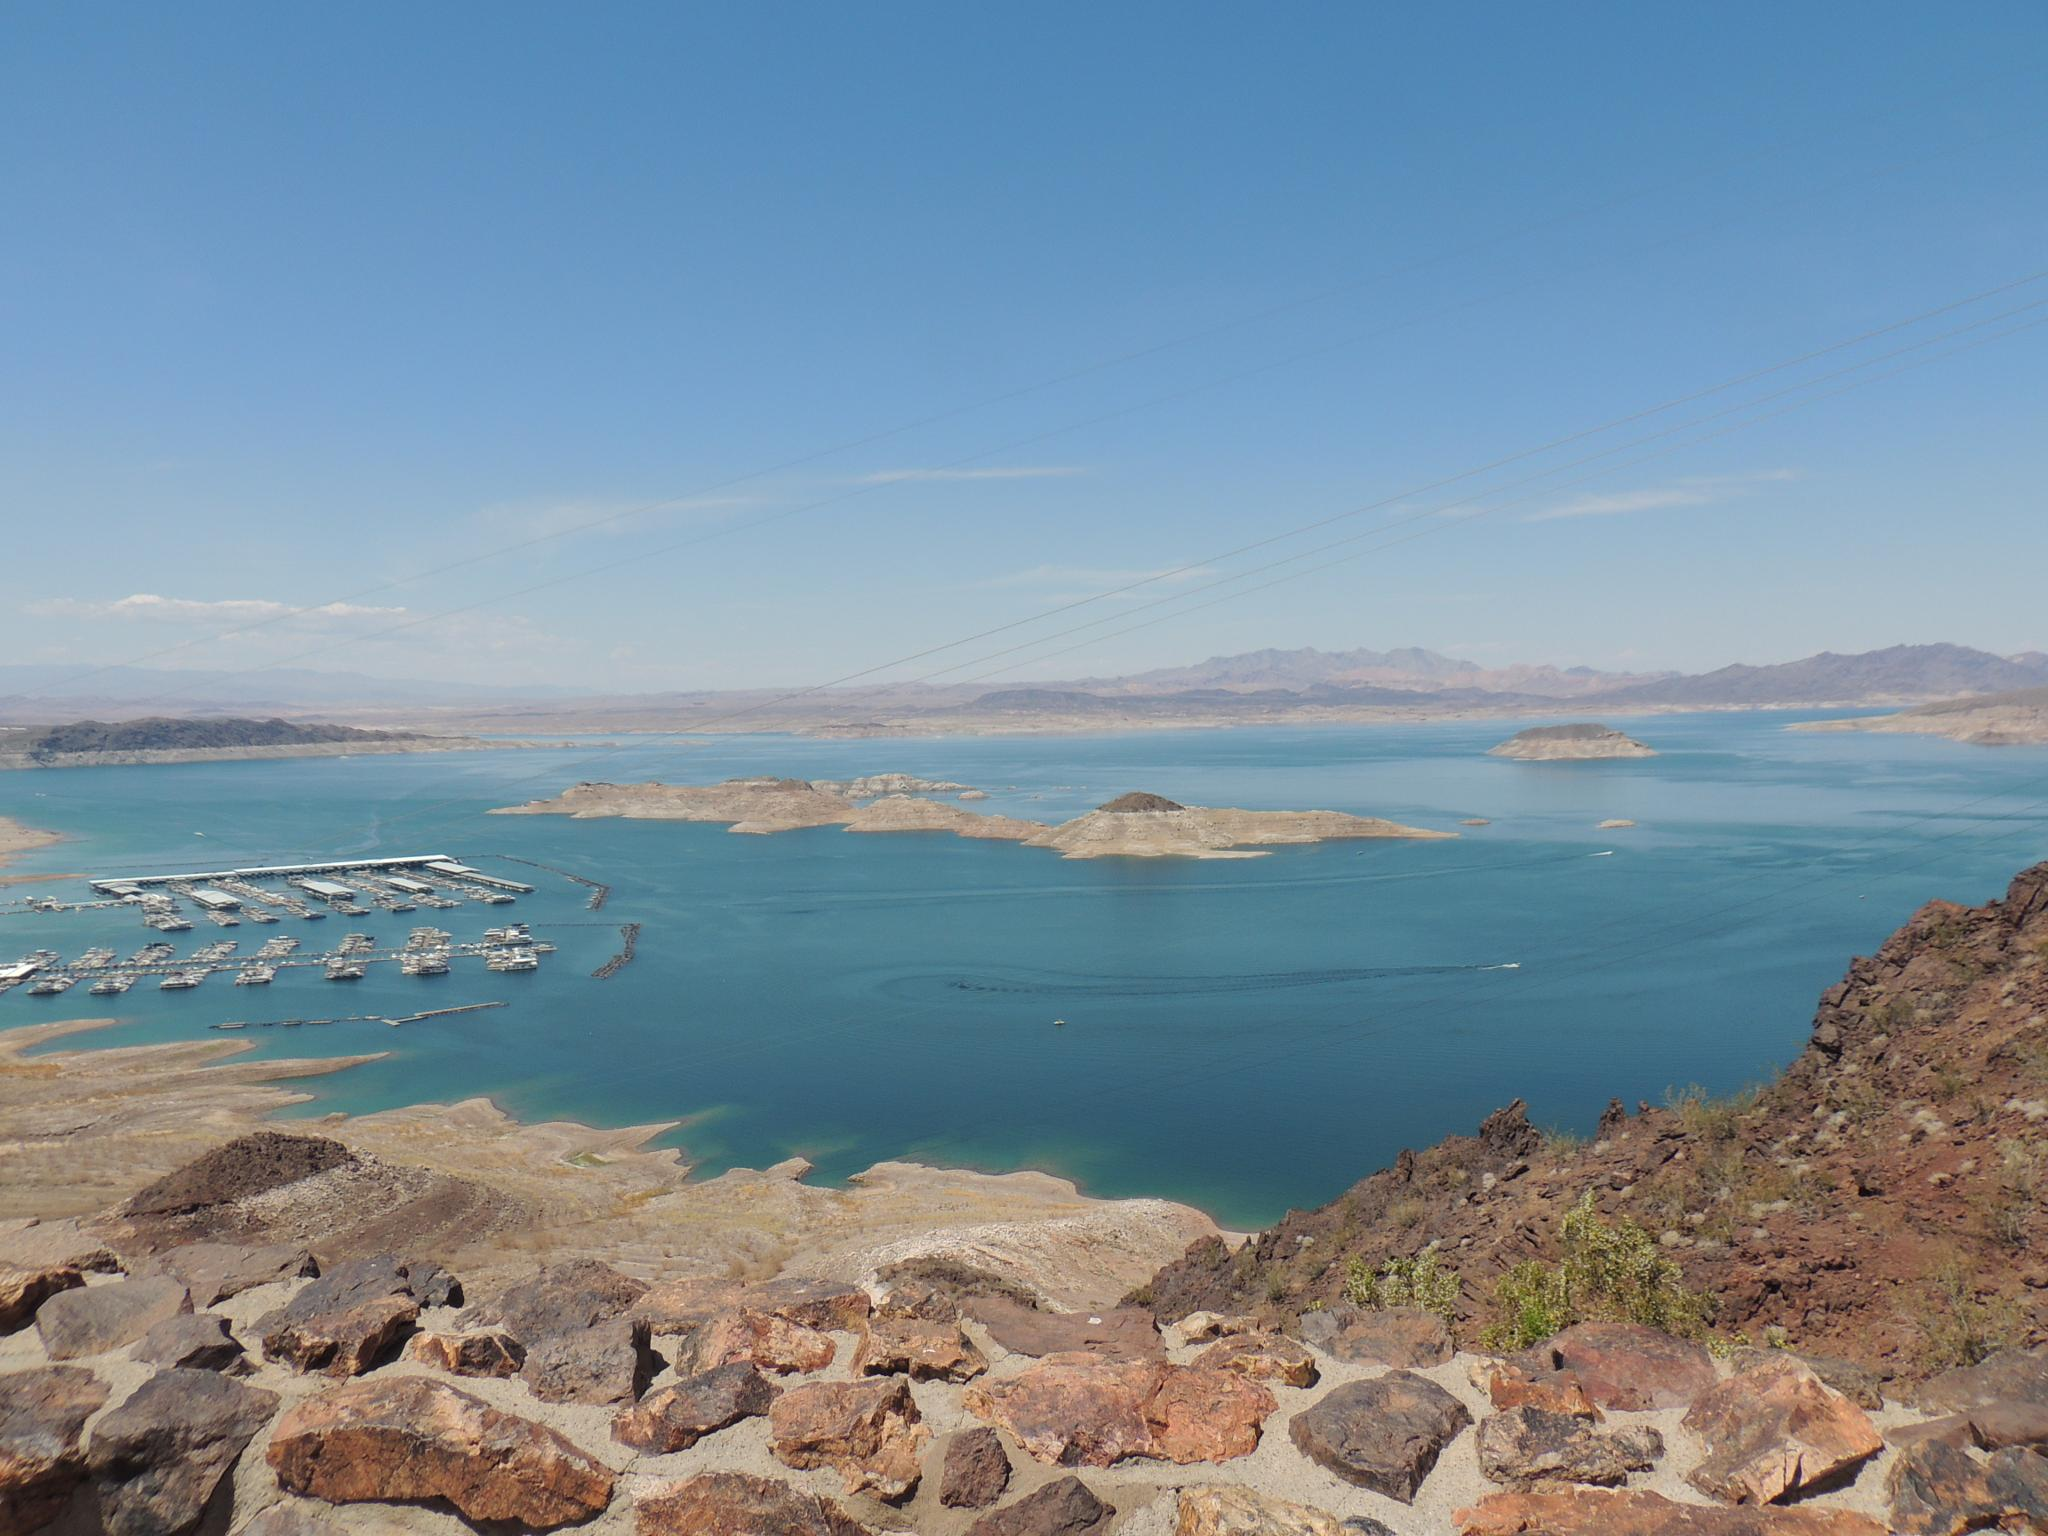 Lake Mead by sh2020